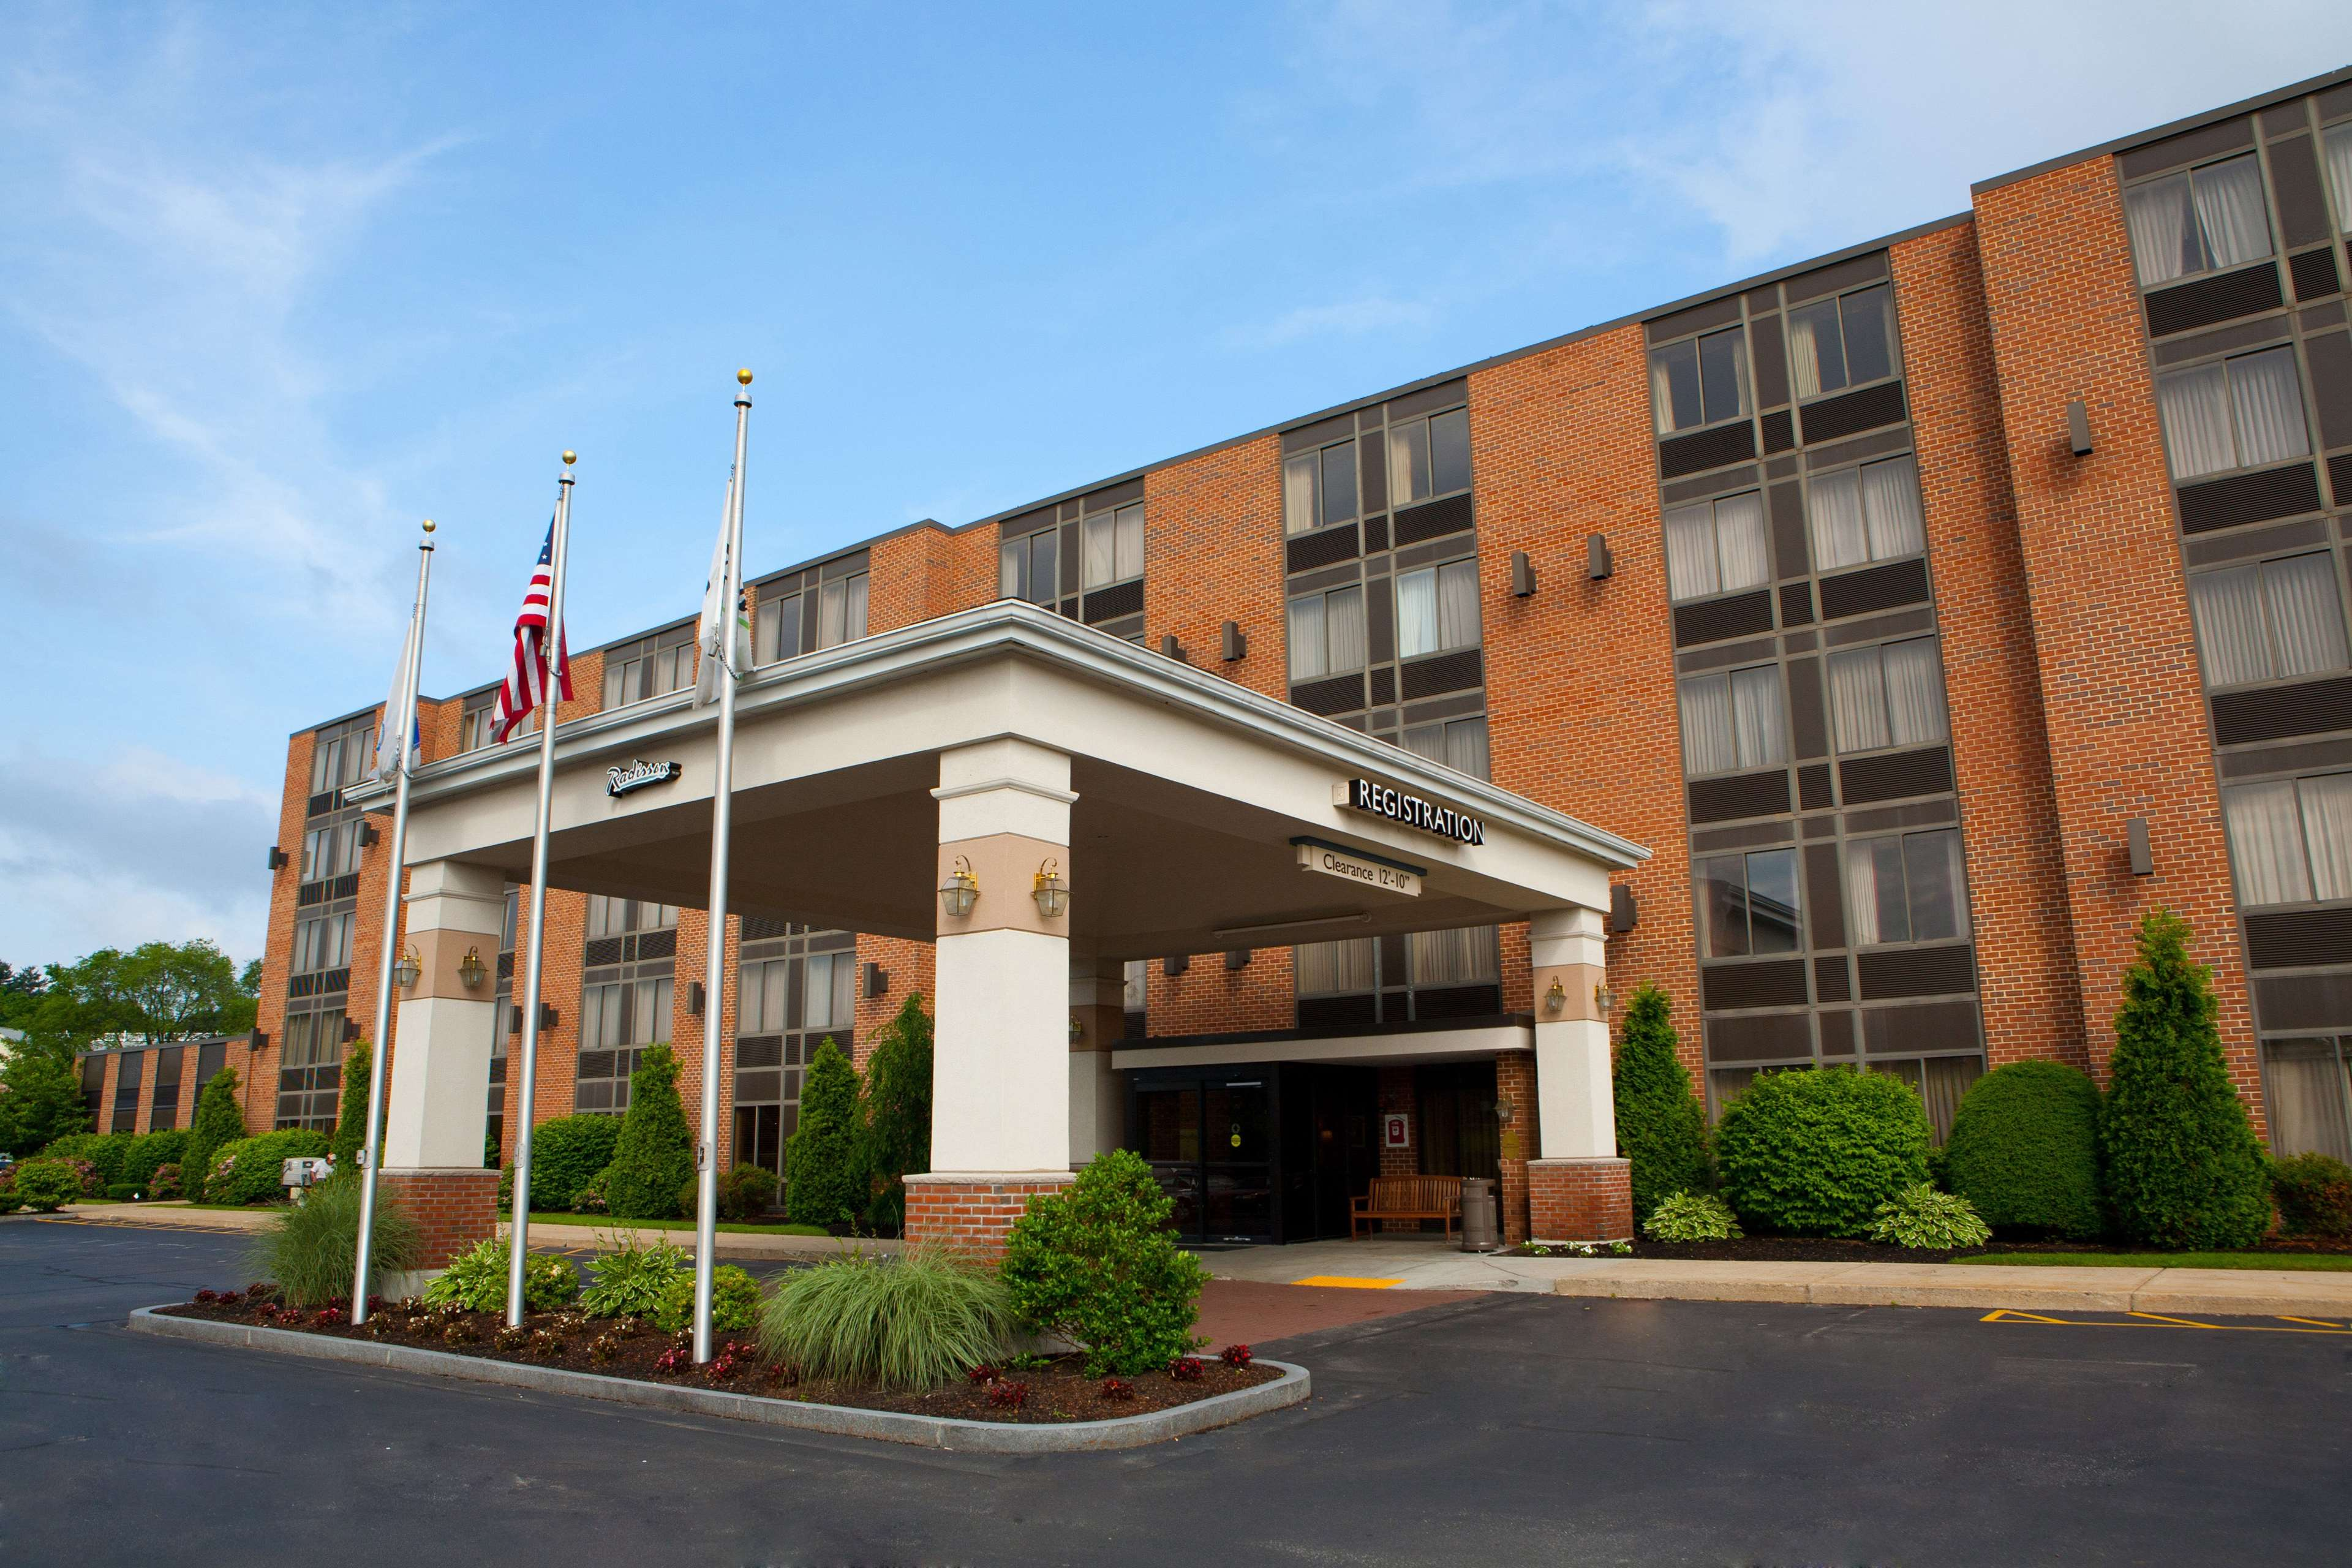 Radisson Hotel & Suites Chelmsford-Lowell - Closed in Chelmsford, MA, photo #2